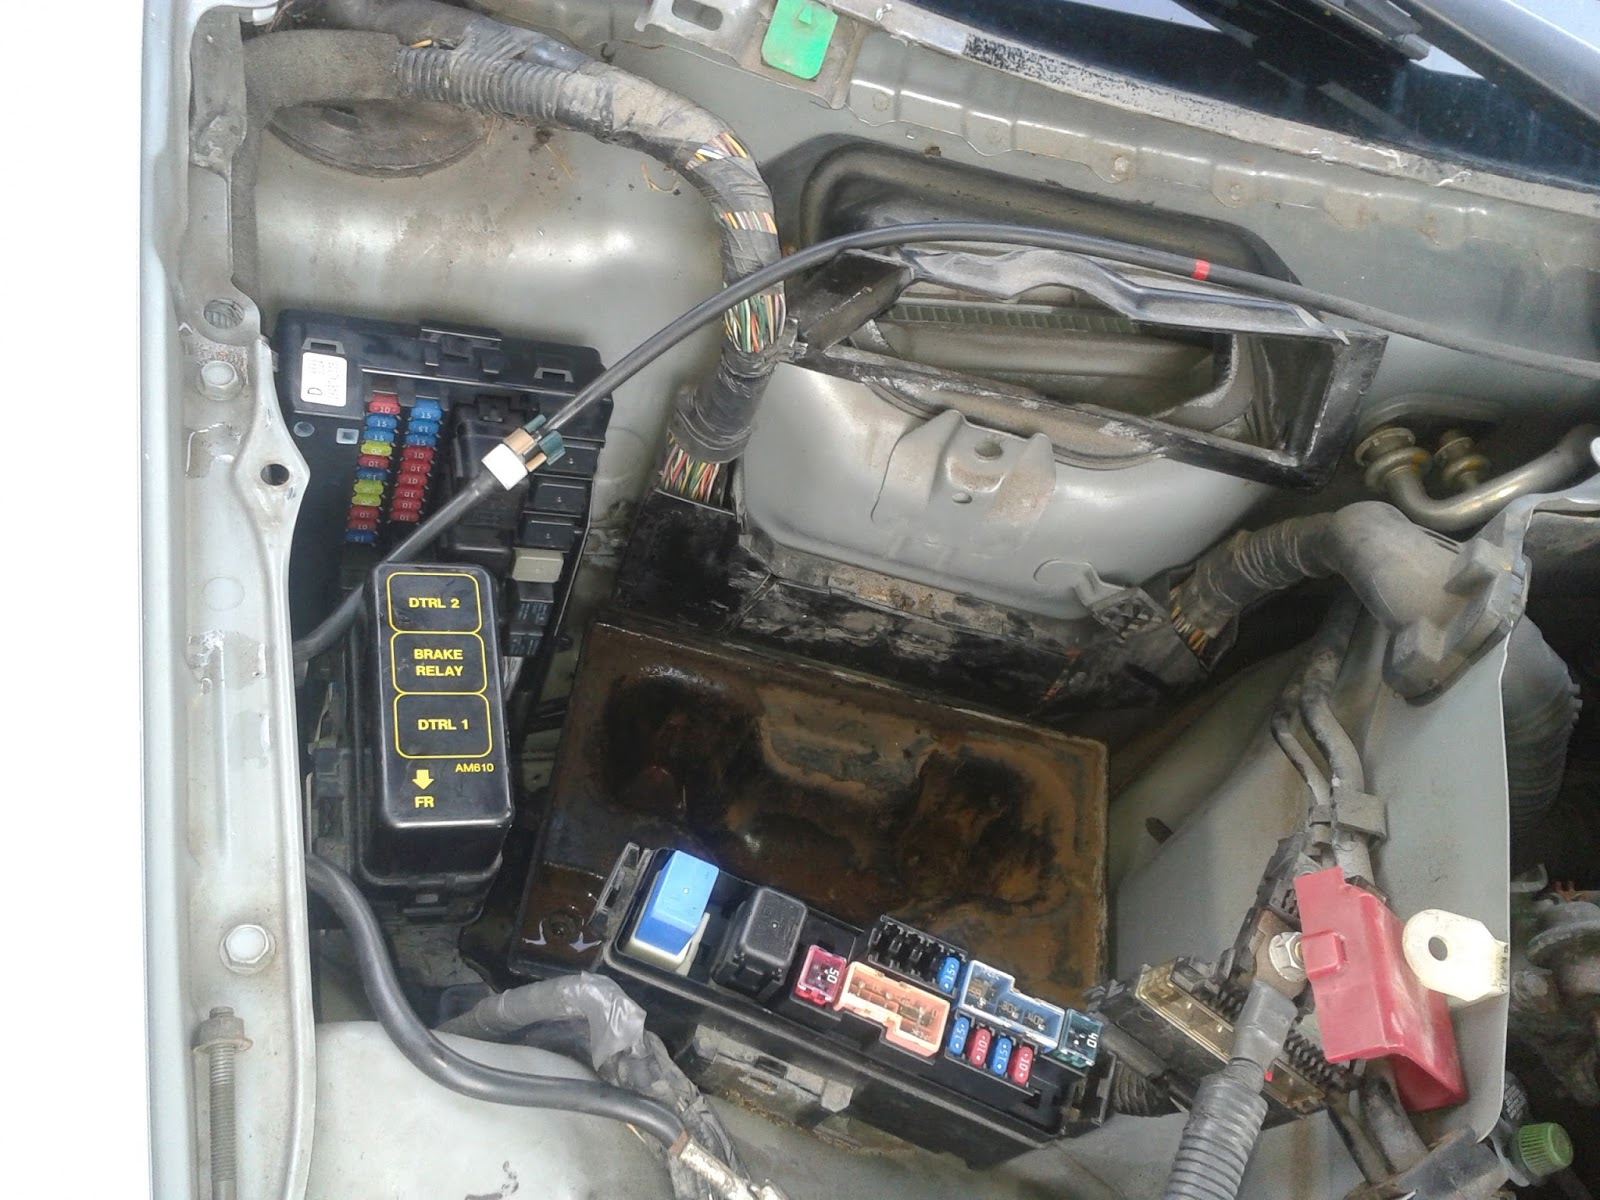 Fuse Box G35 Books Of Wiring Diagram Infinity Zf Inifiniti 2003 Wet Ipdm Issue How To Fix It Rh Jfbreton Blogspot Com Sedan Infiniti 2005